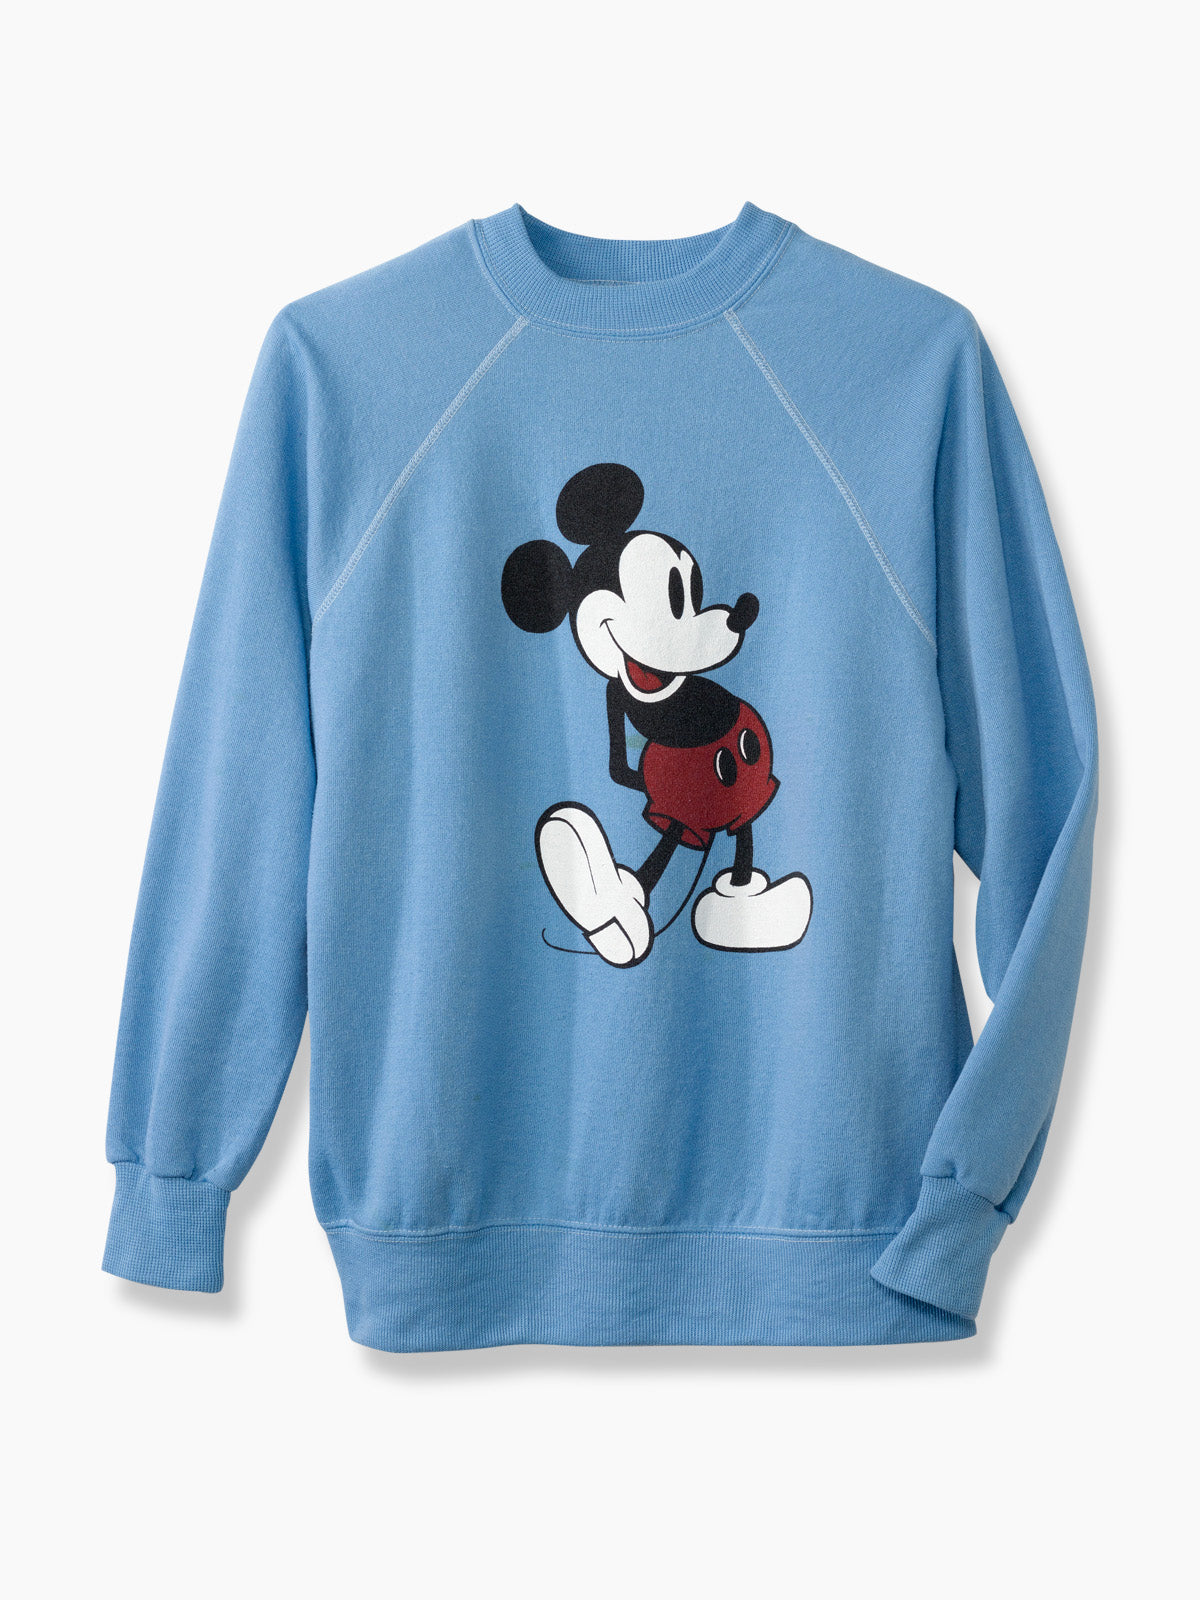 6e719289f Blue Mickey Mouse Logo Printed Vintage Sweater - Ellie Mae Studios